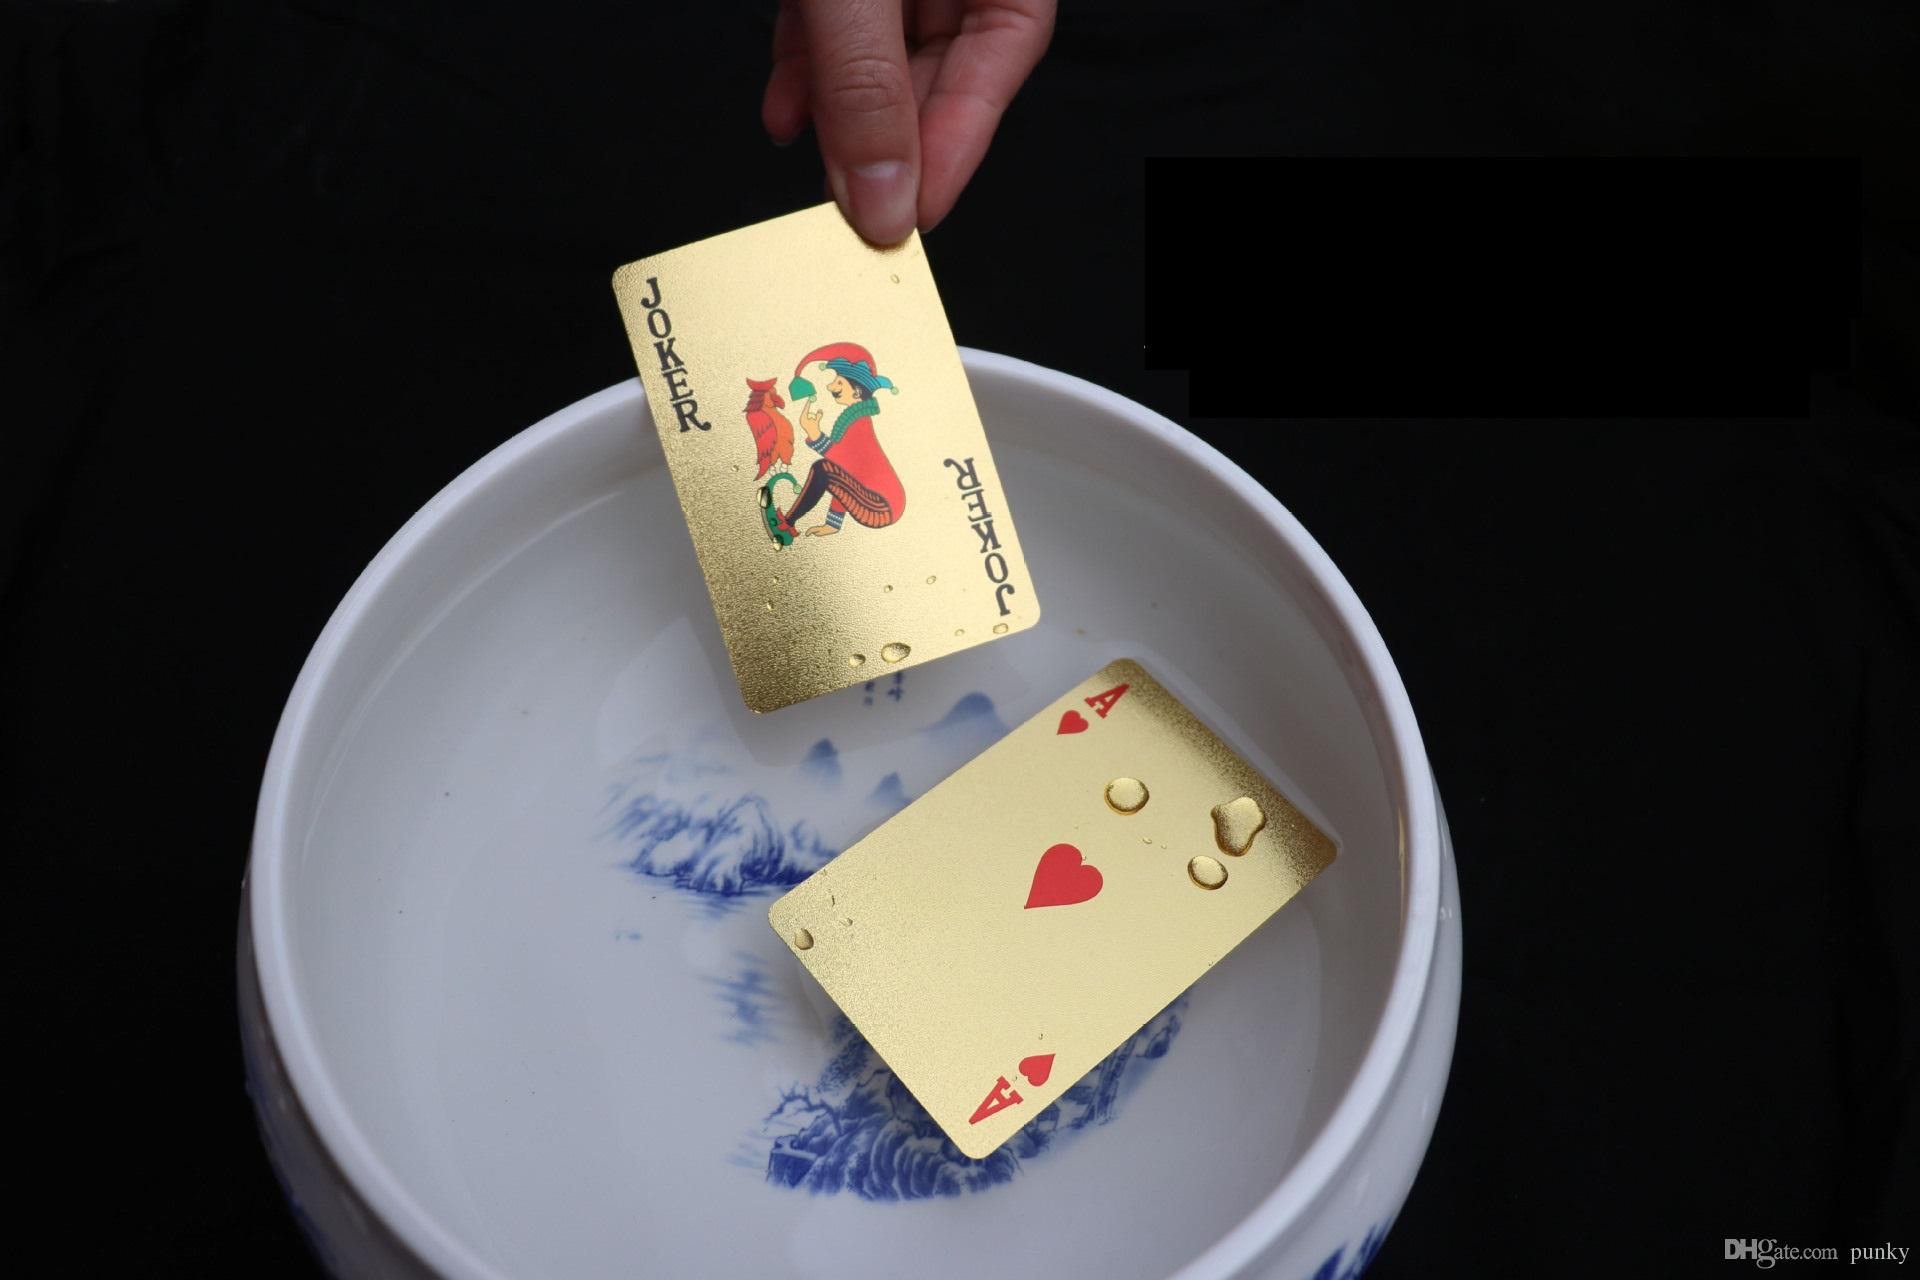 New Arrival 11 designs Gold Foil Silver Foil Plated Playing Cards High-grade Sports Leisure Game Poker Card Gift Wholesale